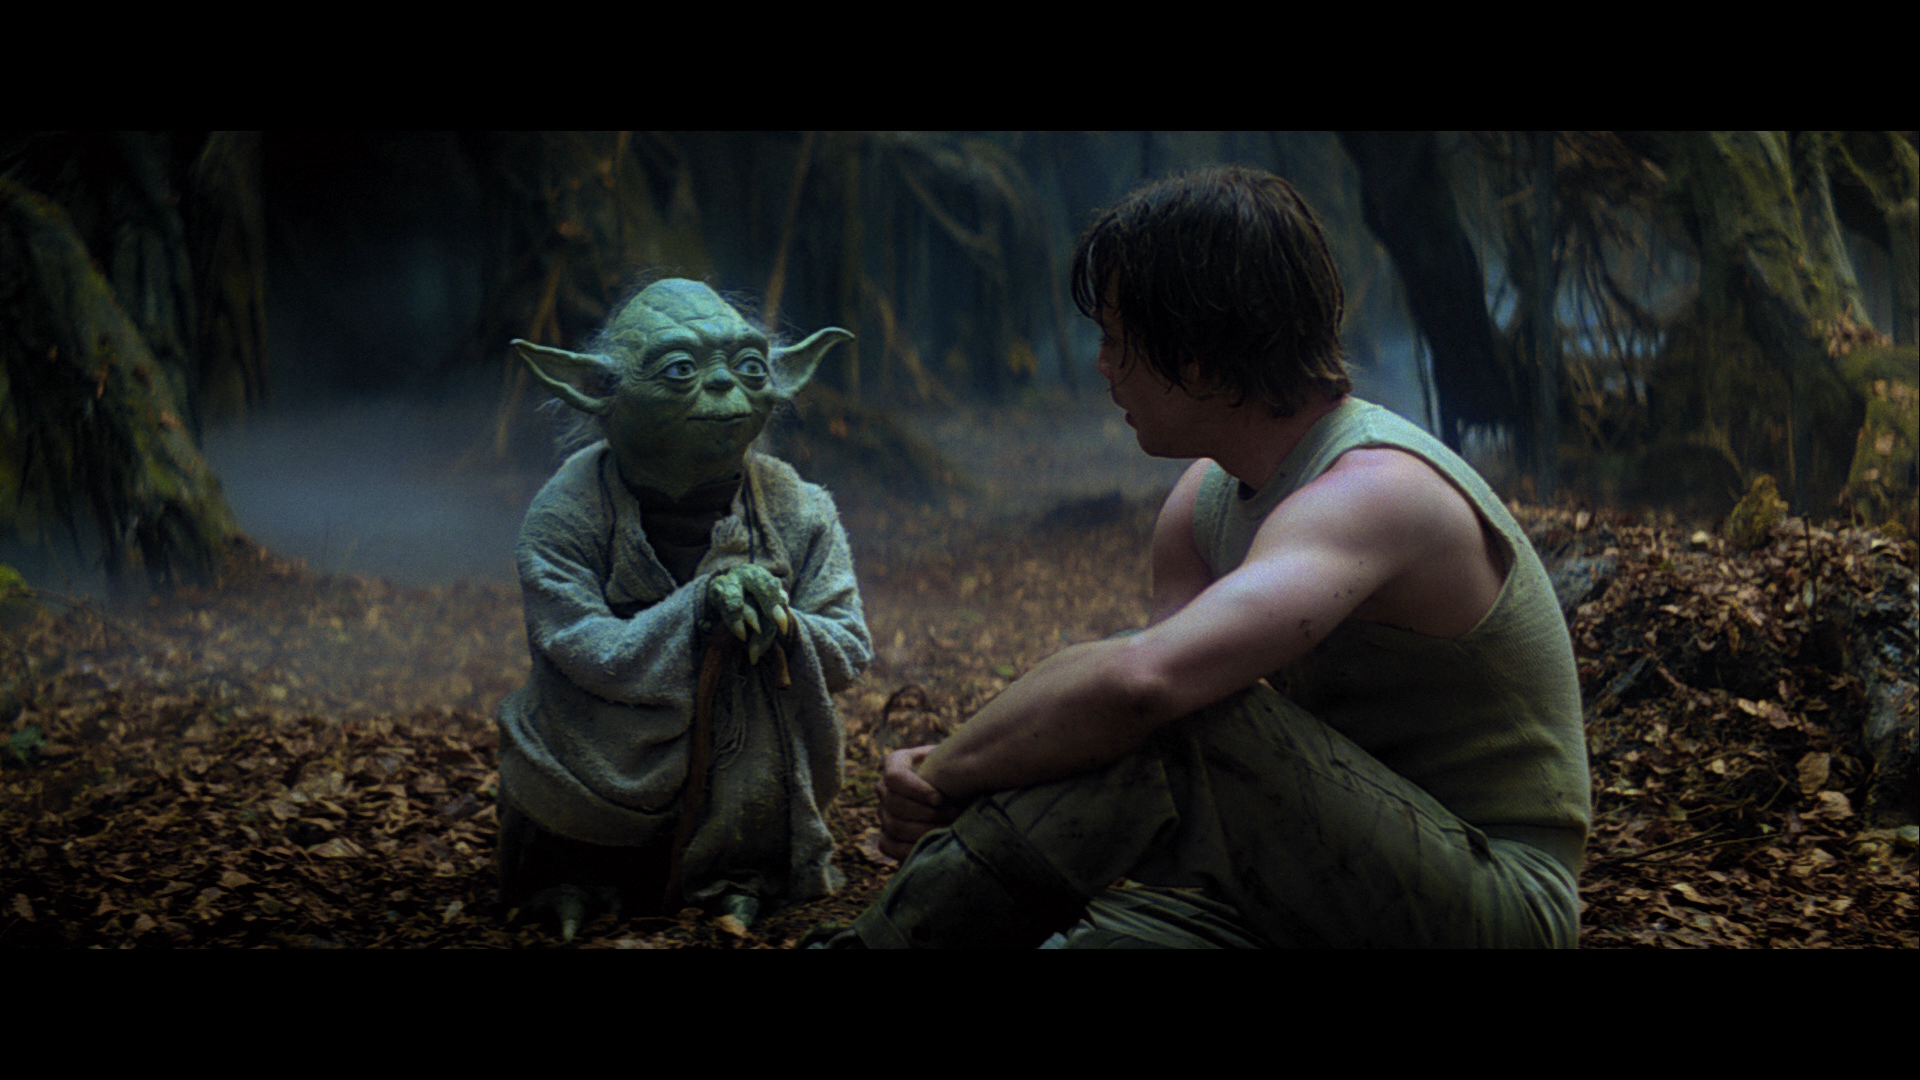 yoda empire strikes back wallpaper - photo #11